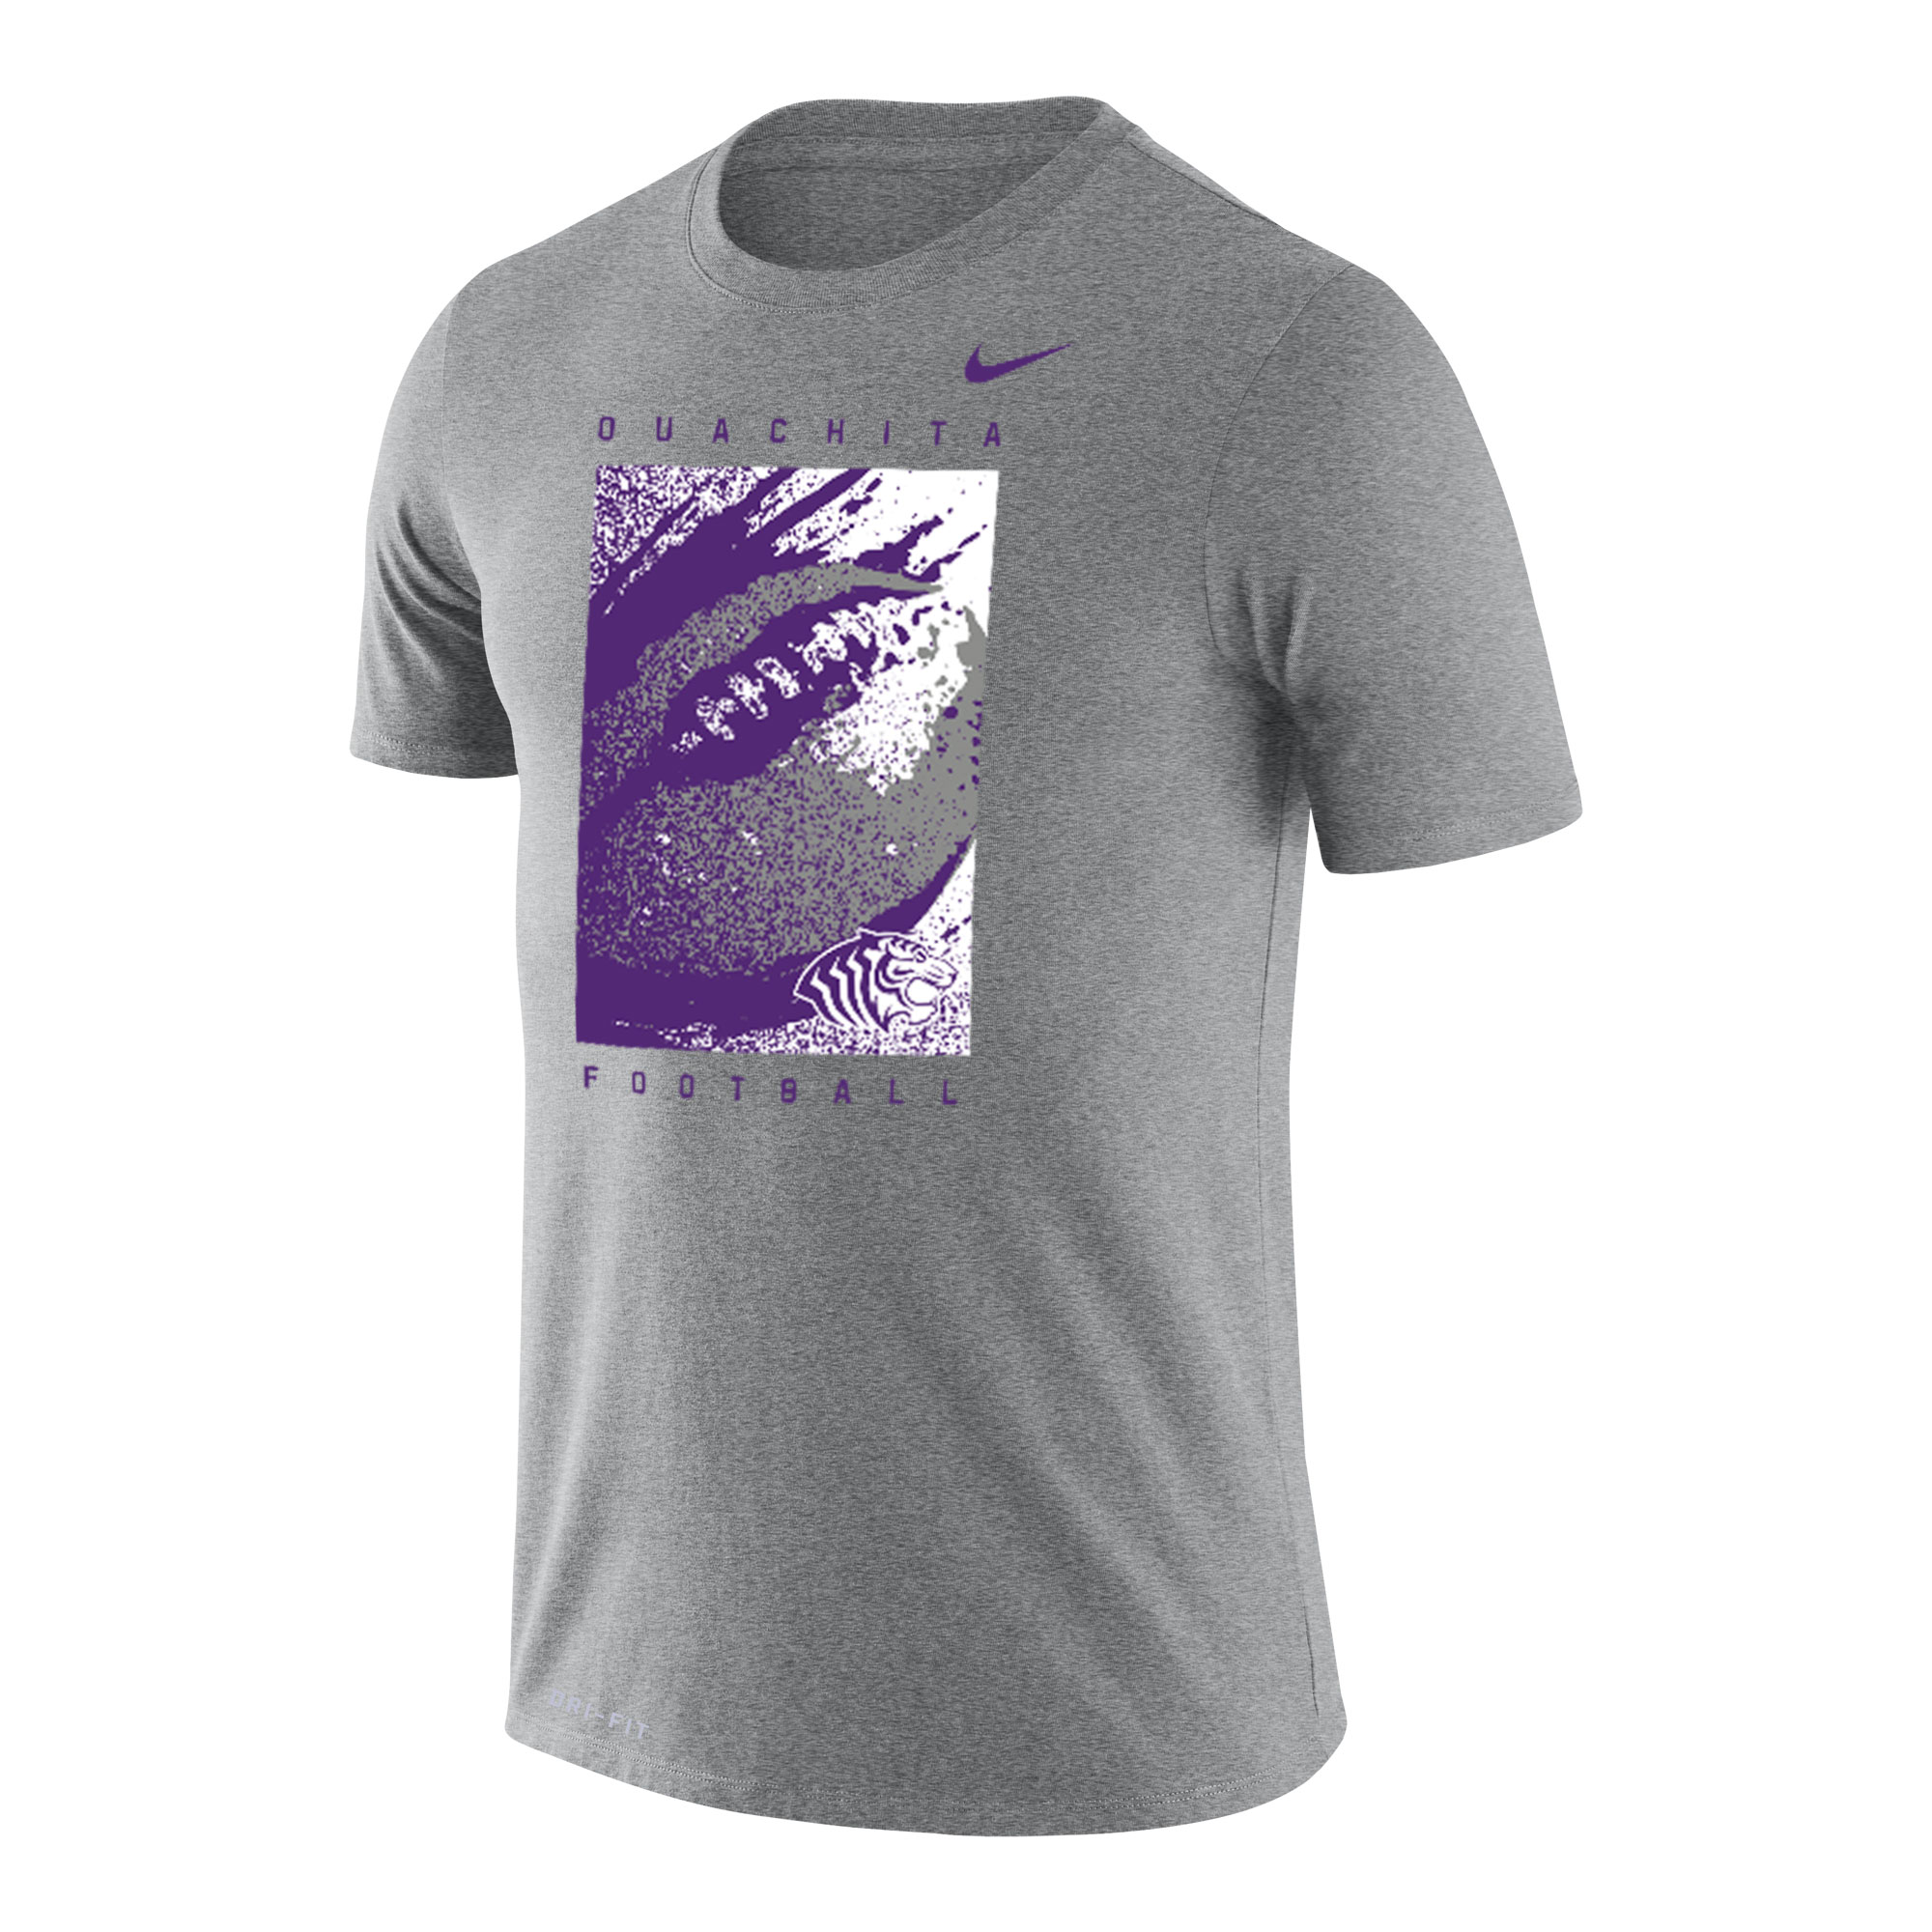 OUACHITA FOOTBALL NIKE DRI-FIT SS TEE